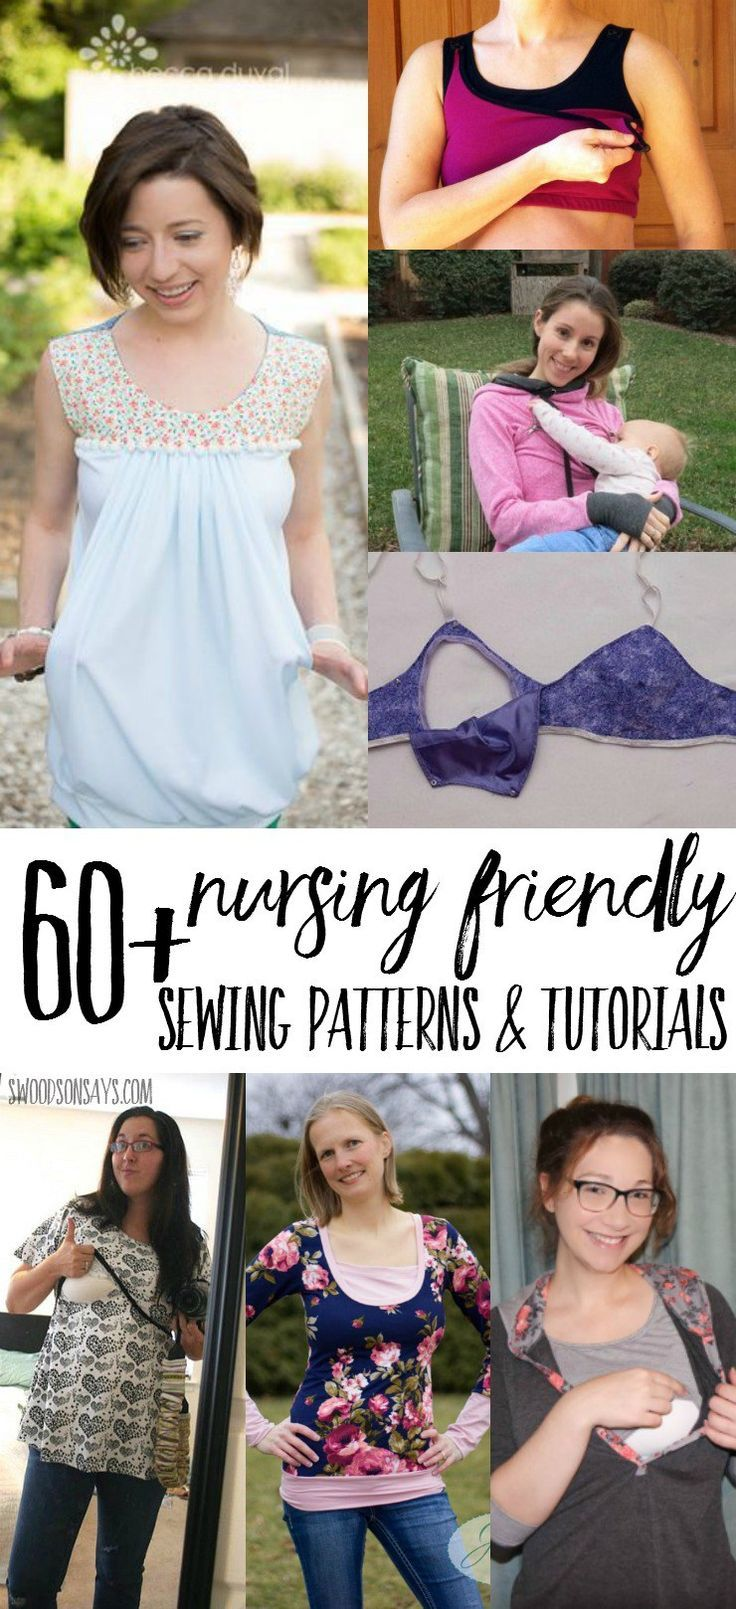 07a0e343e5524 Here's a list of over 60 PDF sewing patterns that are breastfeeding  friendly and nursing friendly sewing tutorials! Lots of these cross over to  be maternity ...